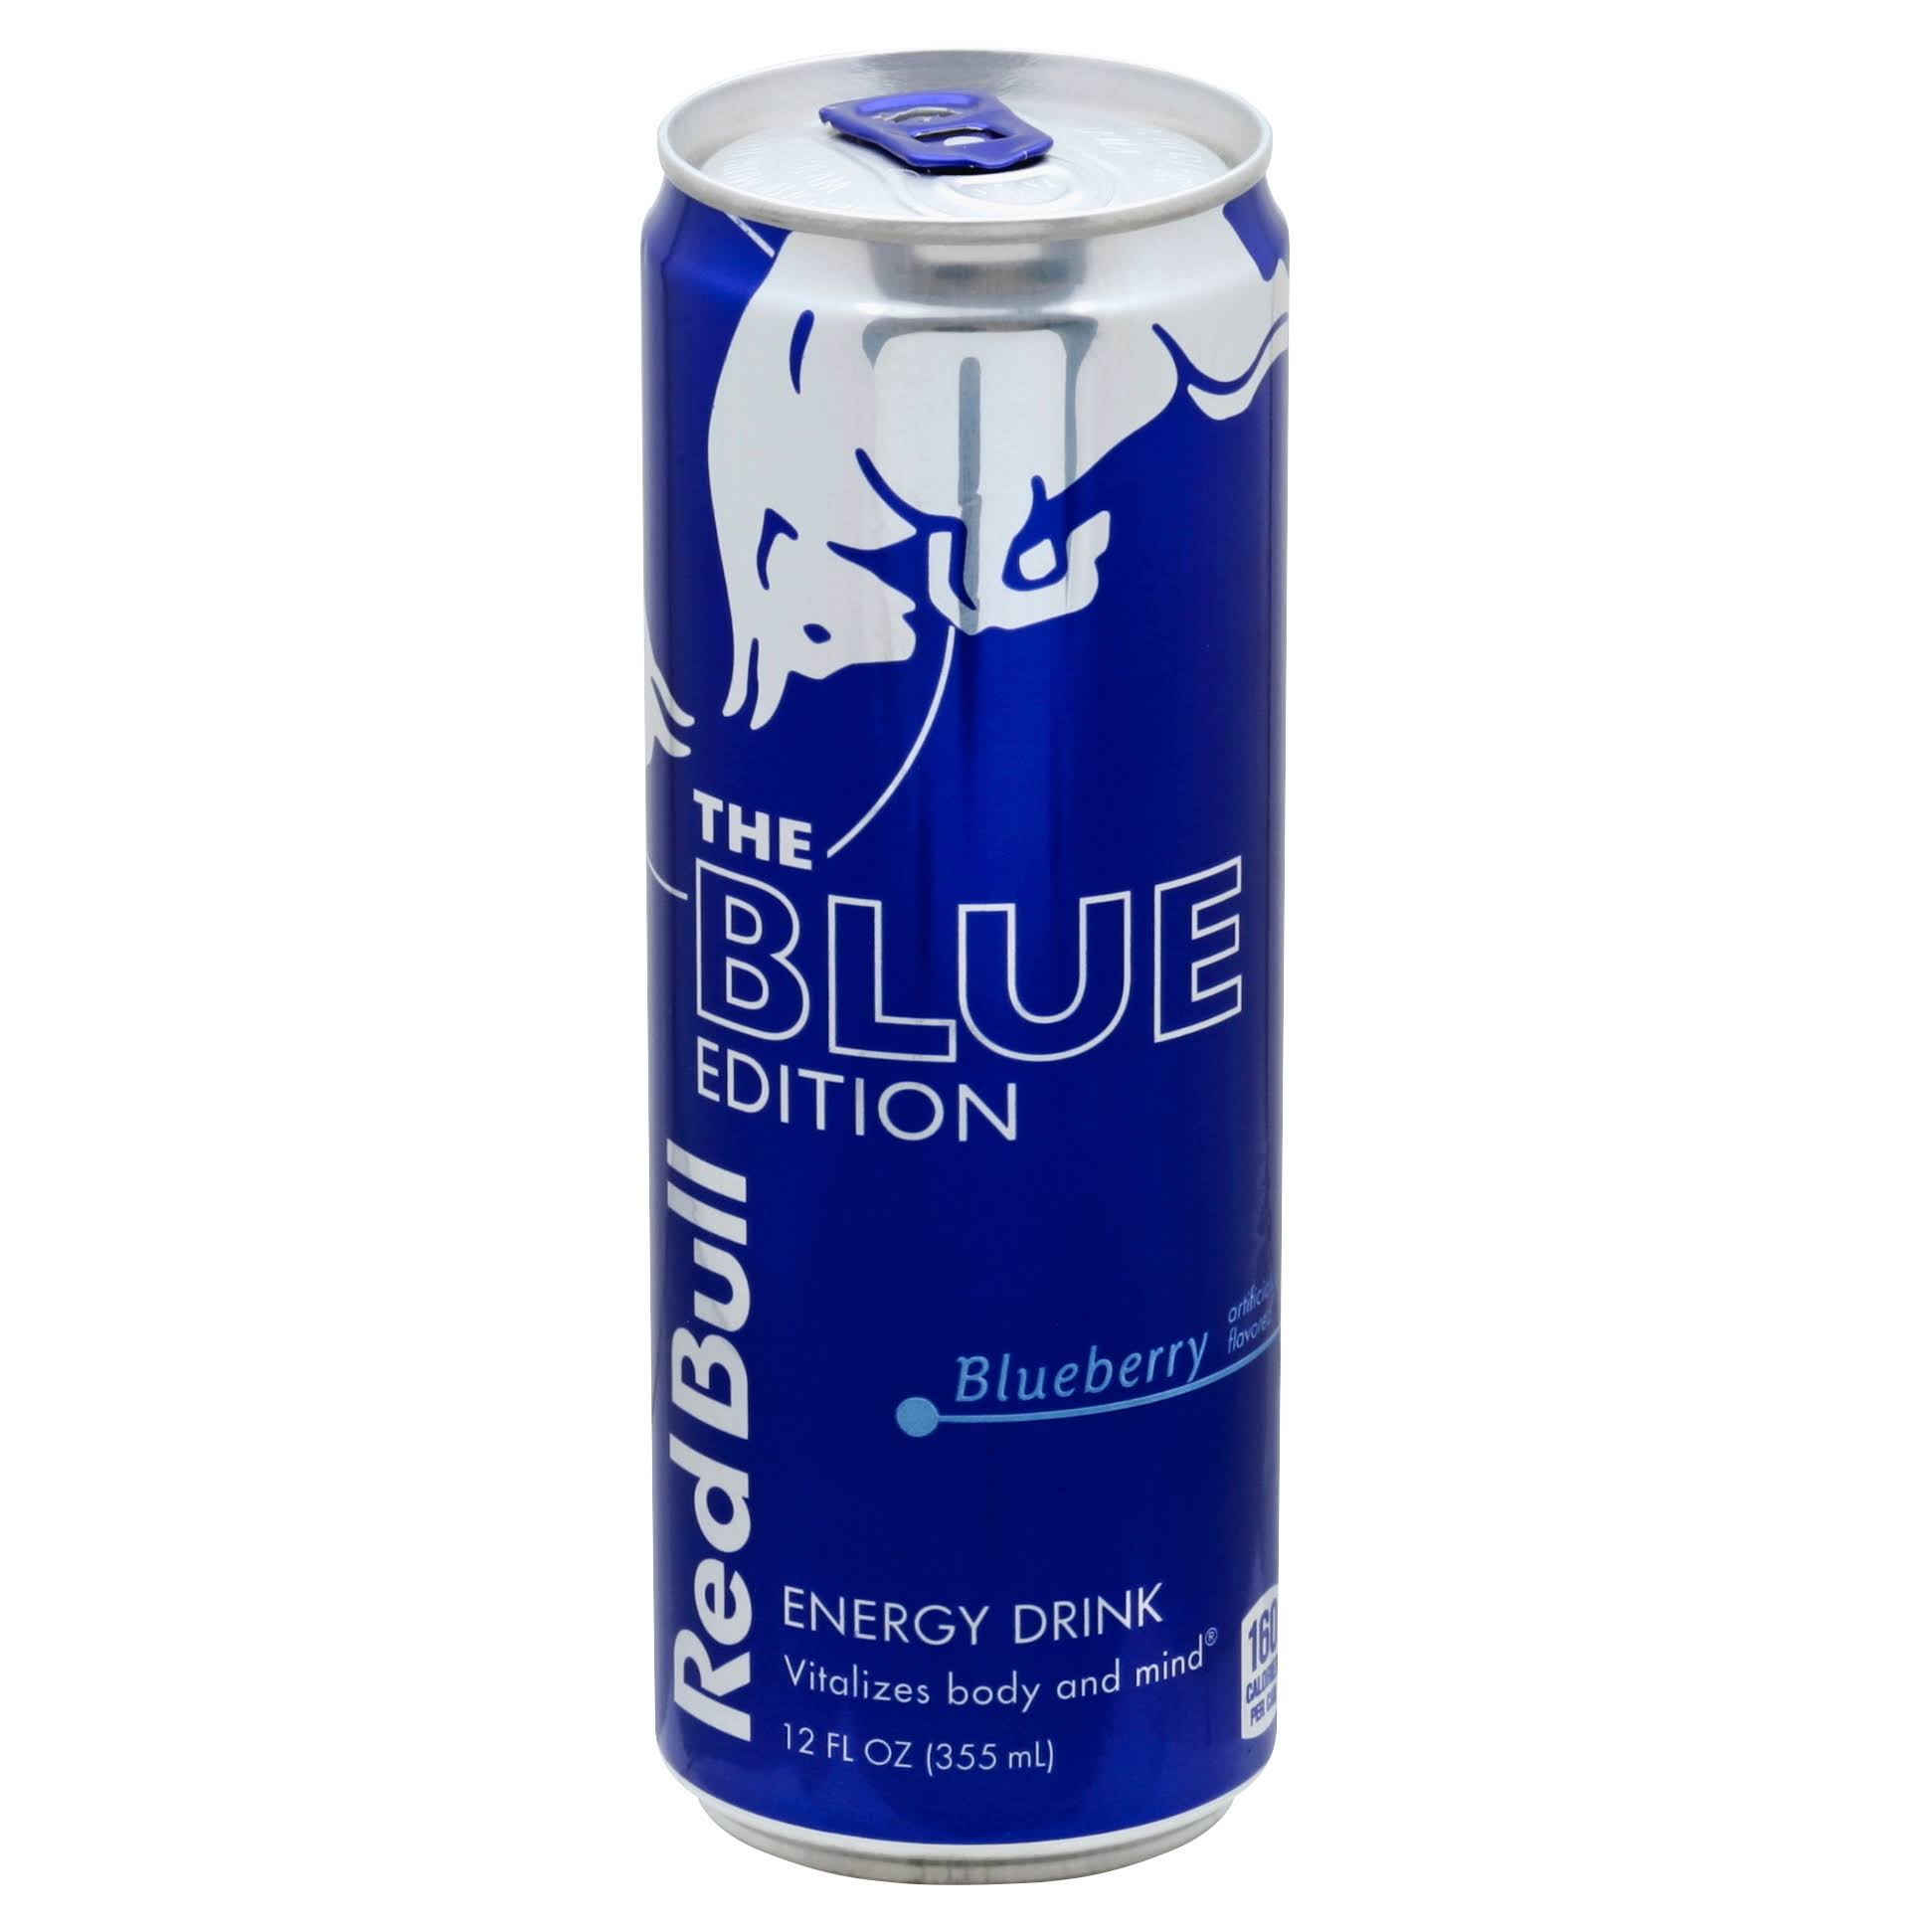 Red Bull The Blue Edition Energy Drink - Blueberry, 355ml